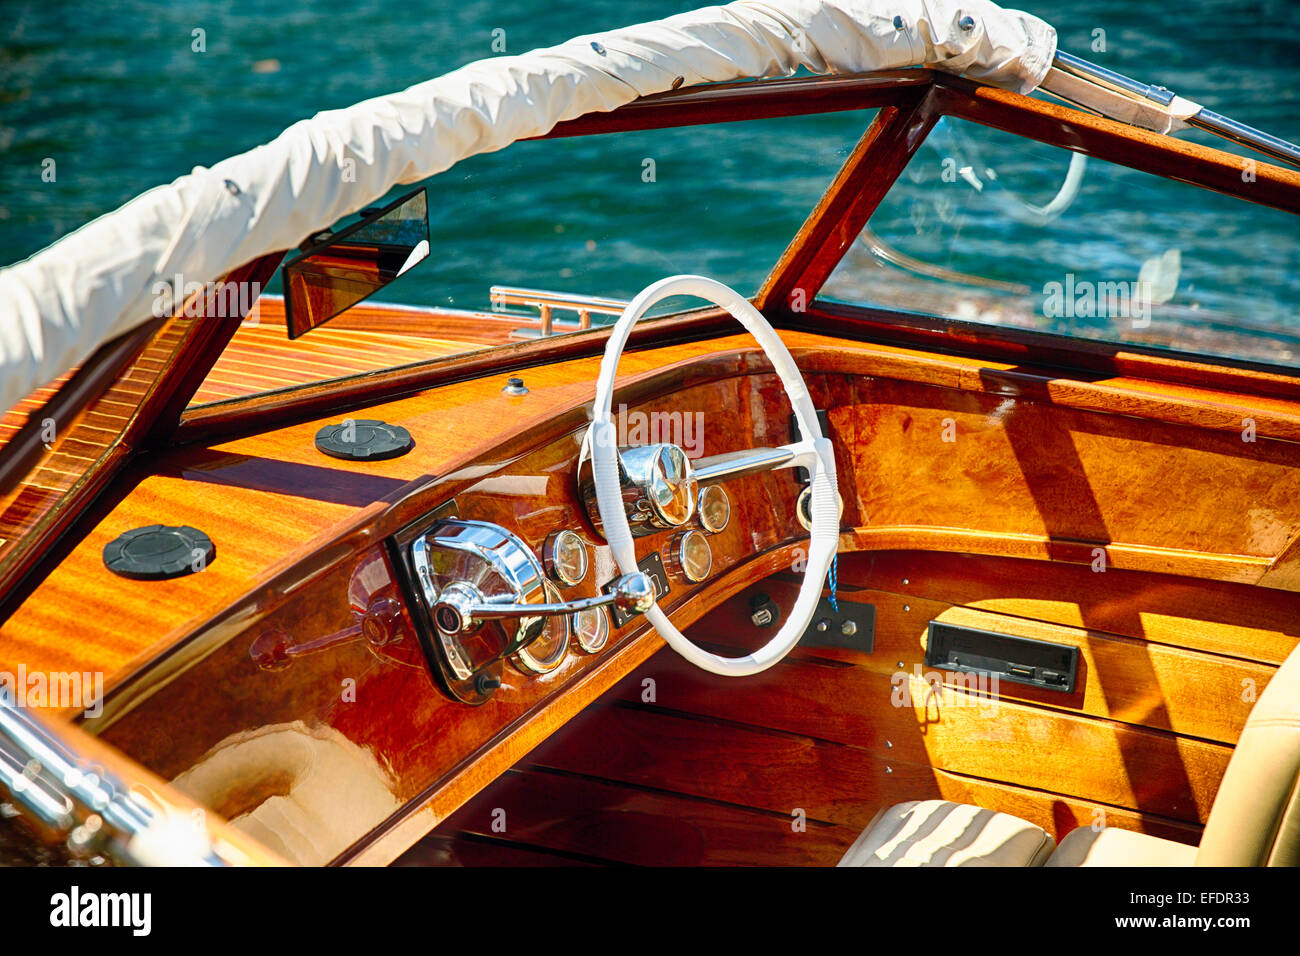 Classic Motorboat Steering Wheel and Controls, Lake Como, Italy - Stock Image